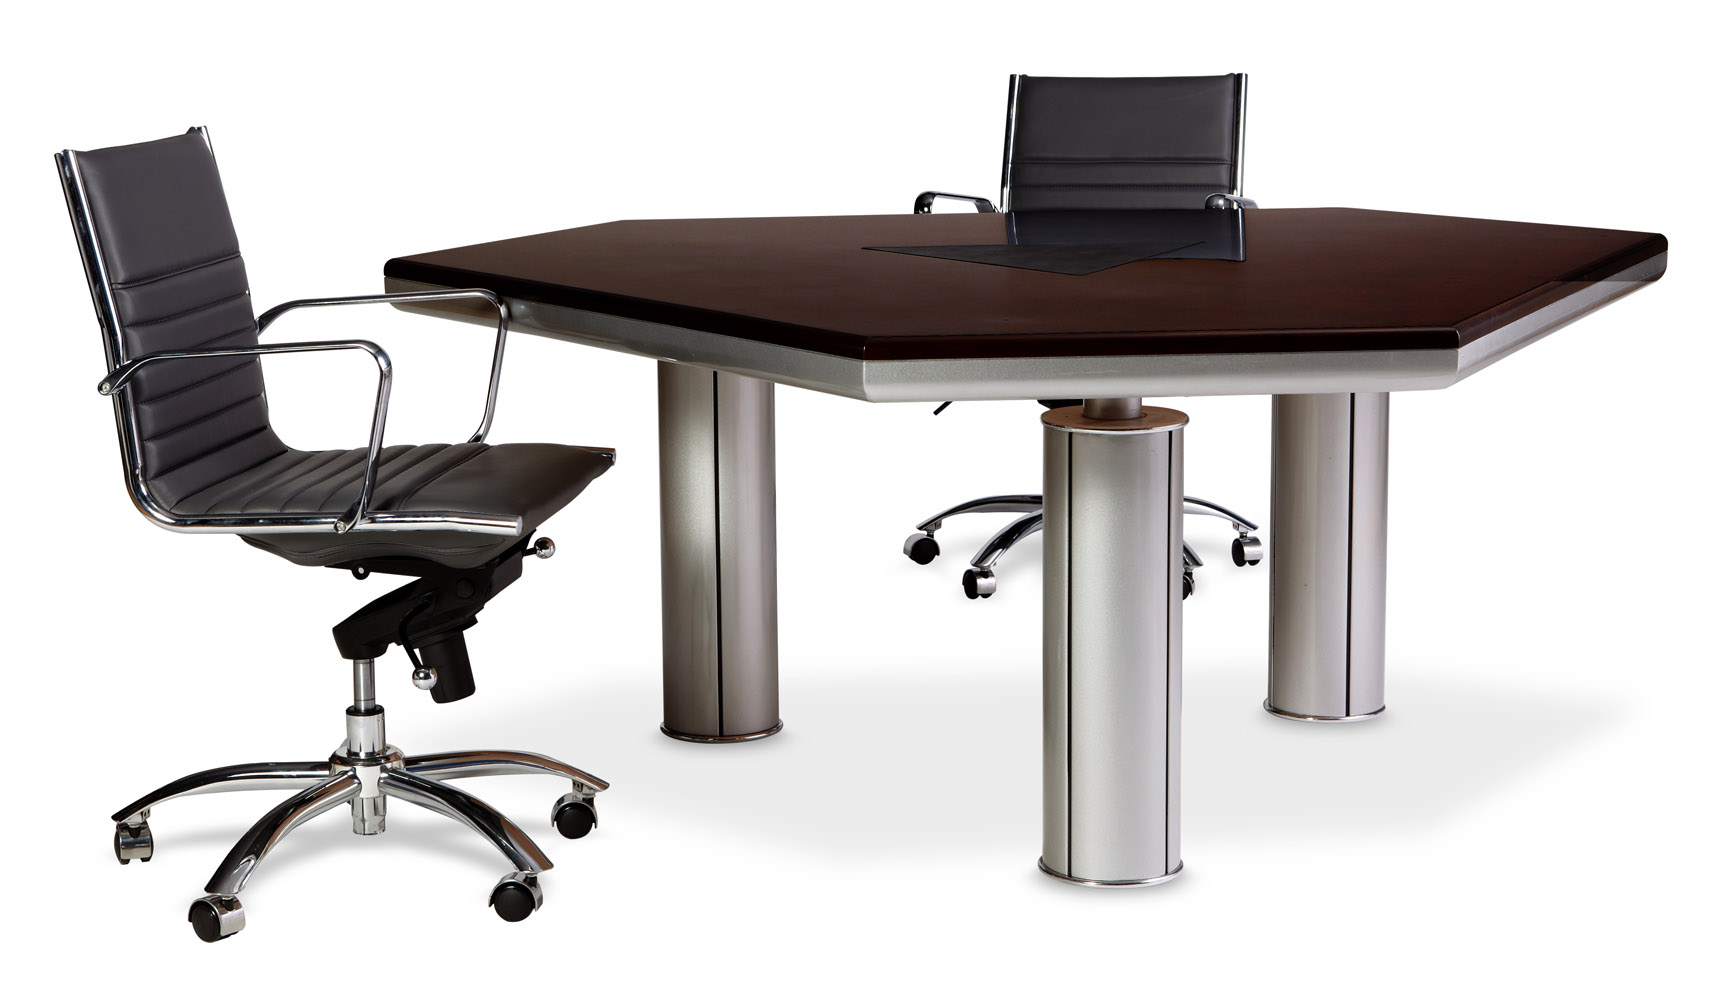 Tyler Modern Conference Table with Woot top and Metal Legs  : tylerconferencetable2 from www.zurifurniture.com size 1725 x 1000 jpeg 181kB